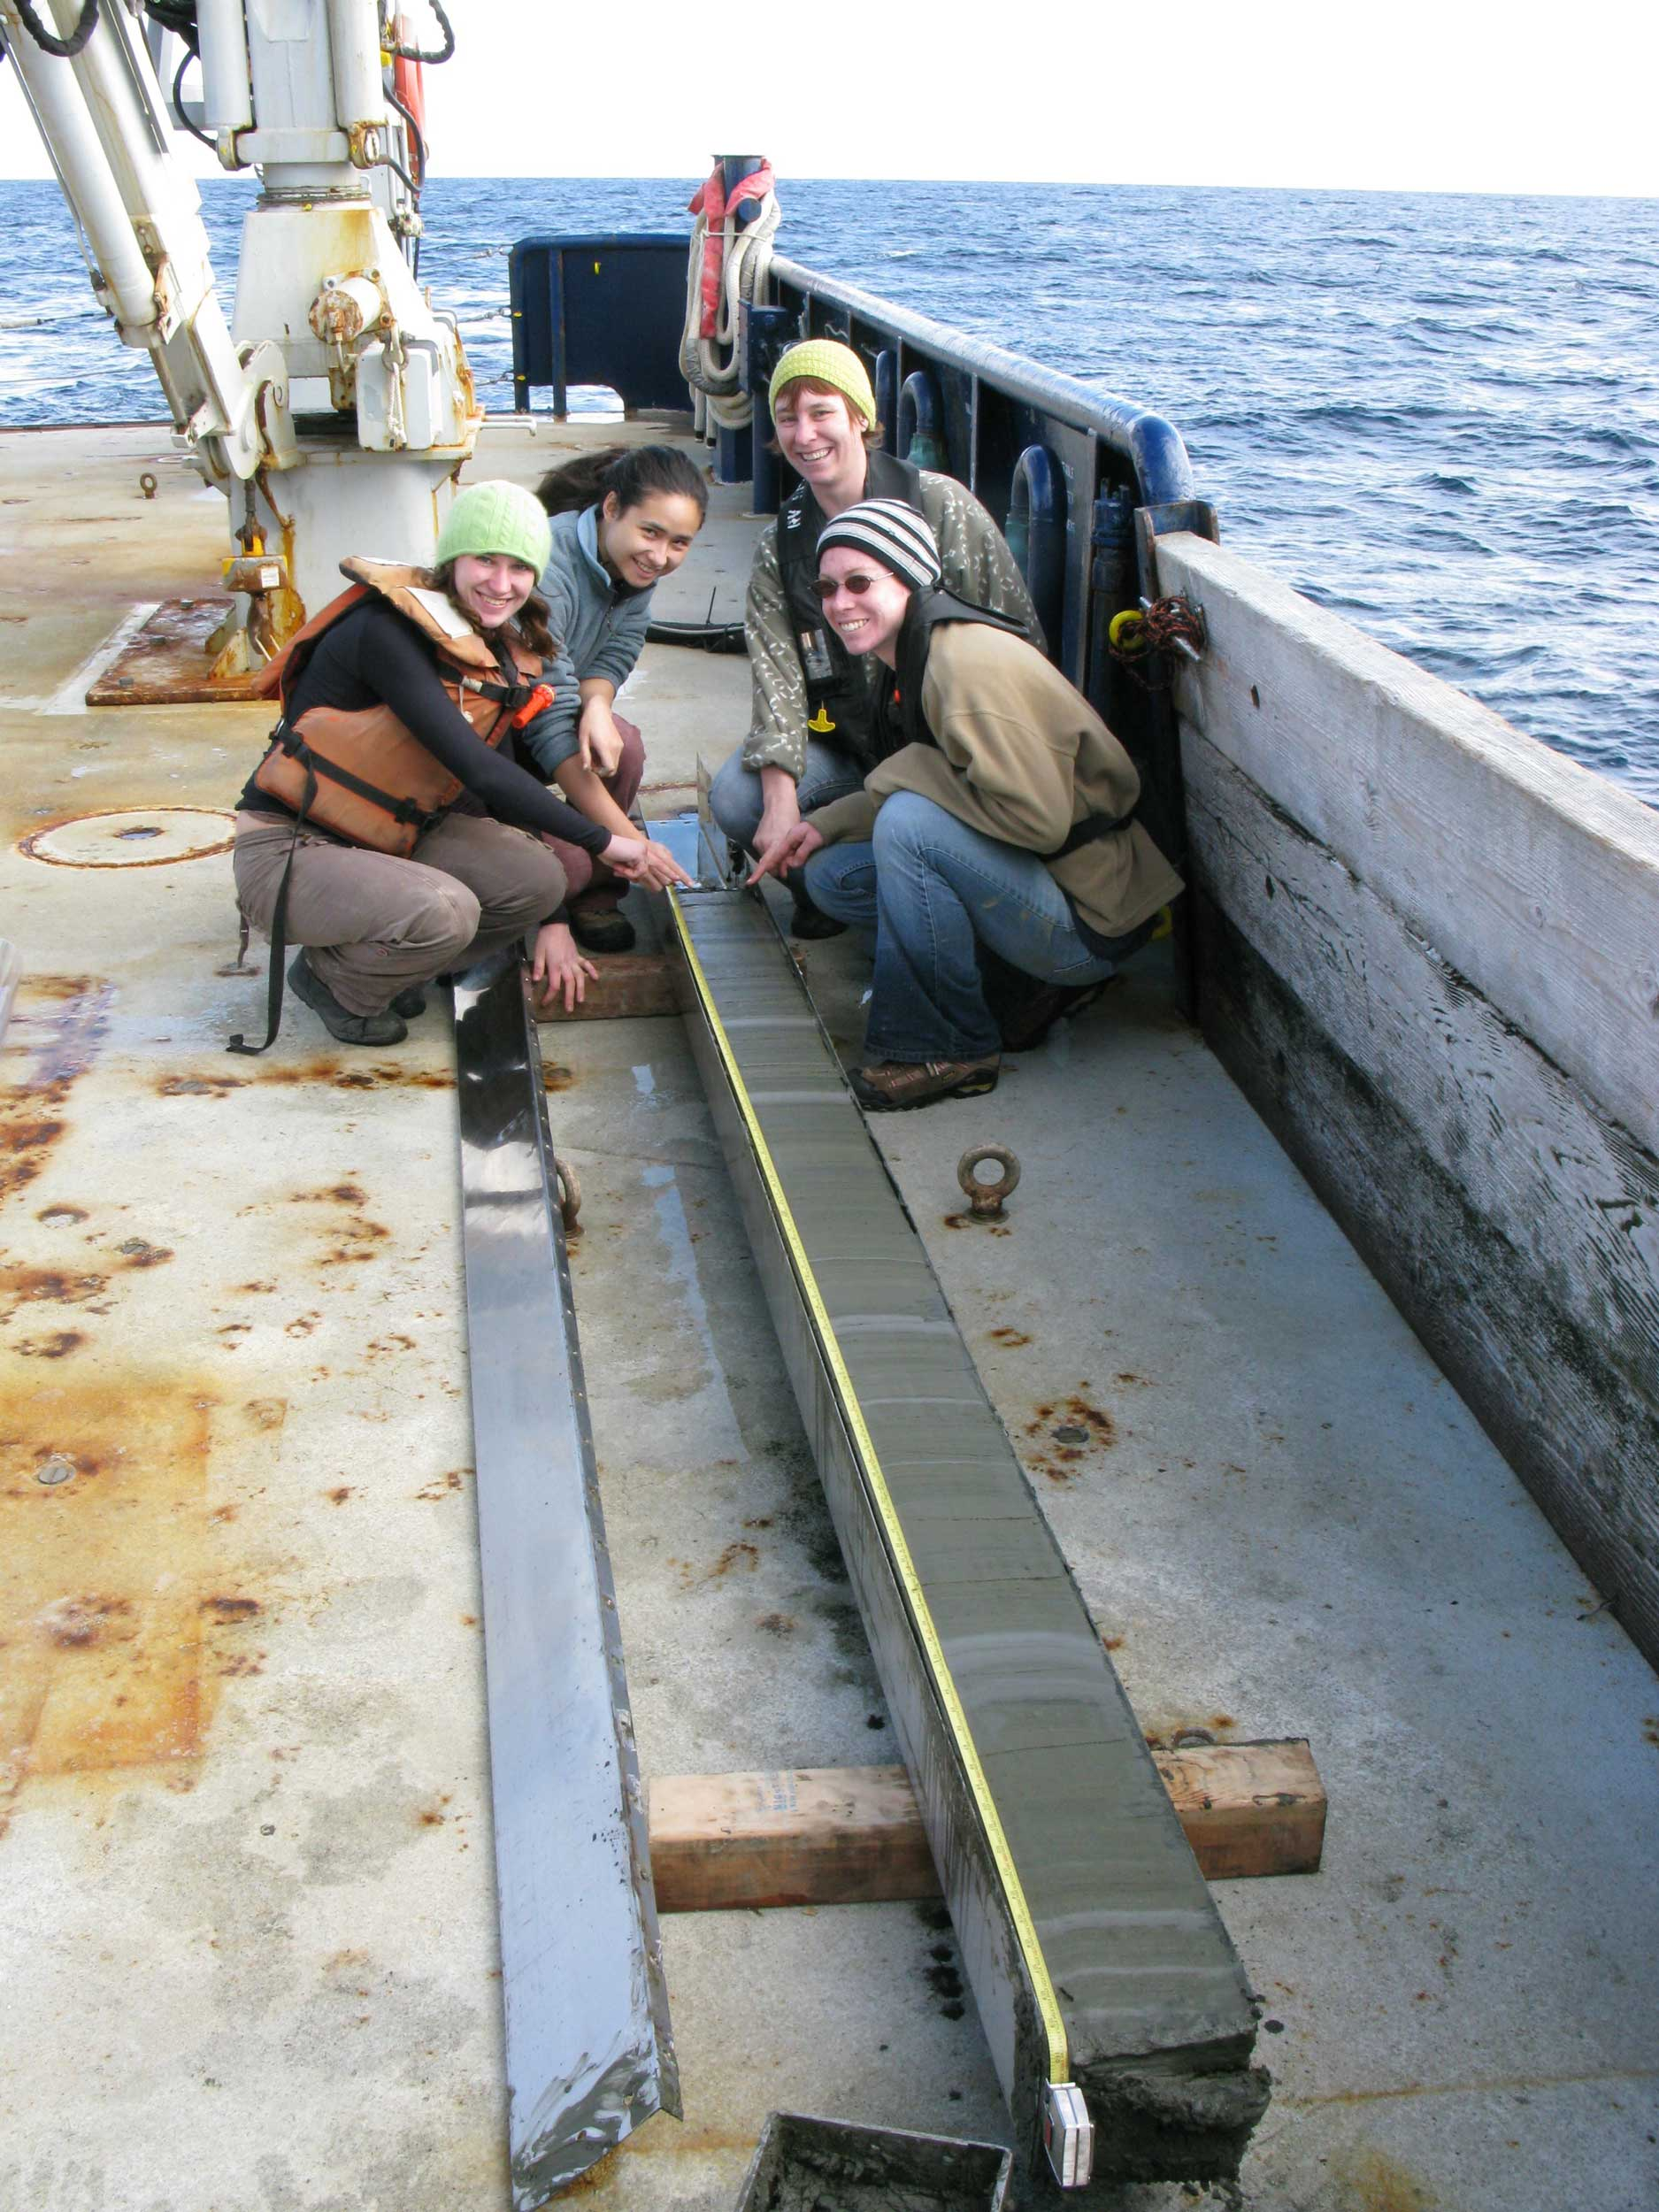 From left to right: Former University of Michigan undergraduate Athena Eyster, former U-M graduate student Karla Knudsen, Ingrid Hendy and former U-M graduate student Meghan Wagner examine a sediment core collected in the Santa Barbara Channel, California, in 2009. Image credit: Arndt Schimmelmann